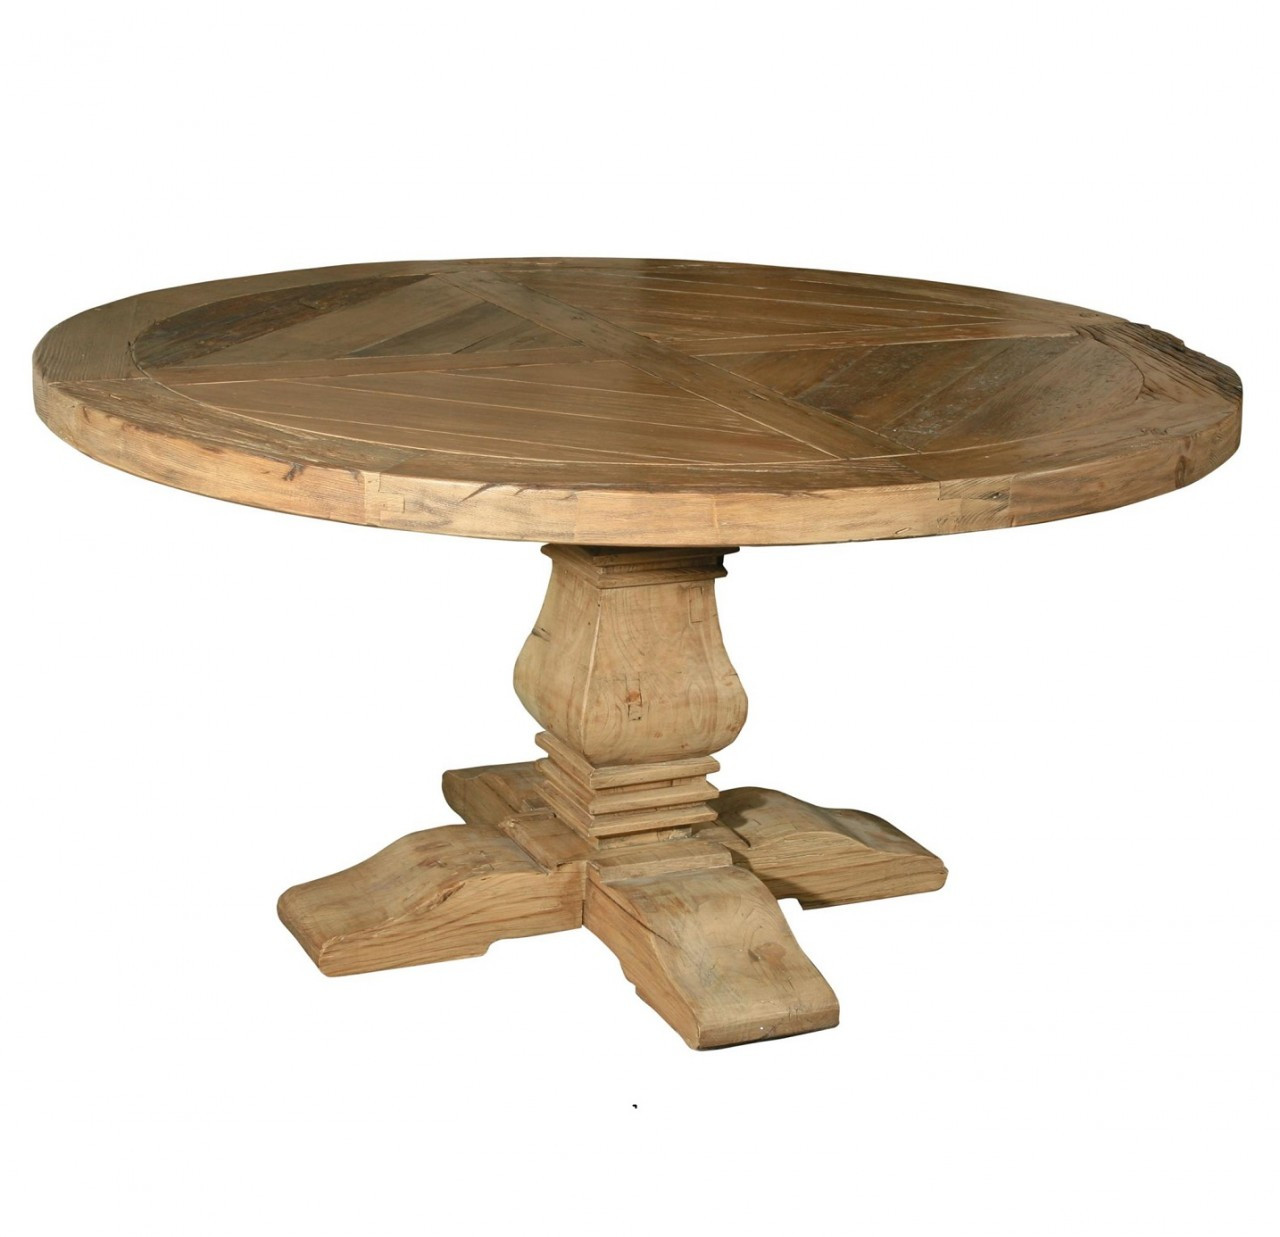 60 Round Dining Table Reclaimed Wood Round Dining Tables Zin Home